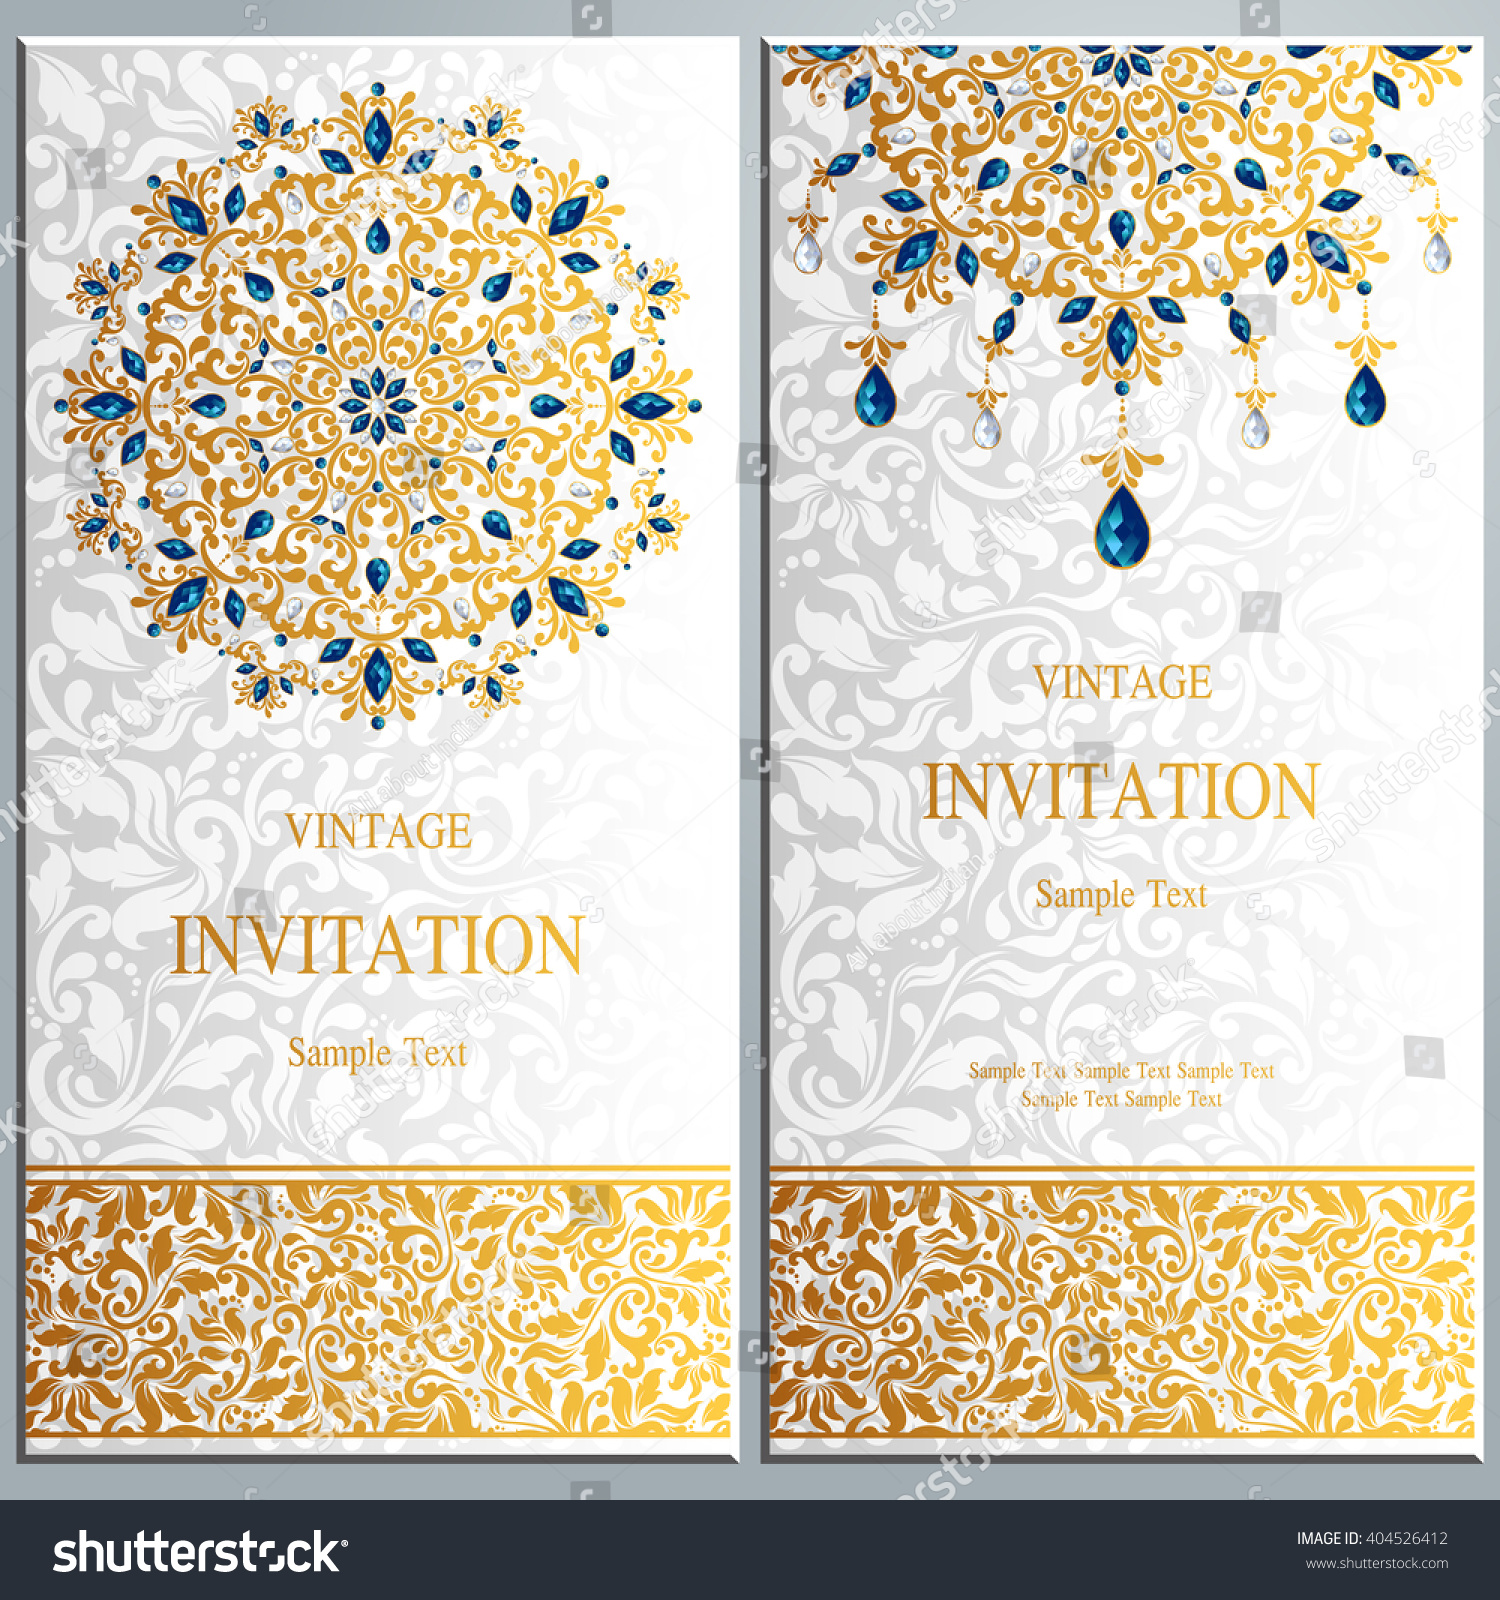 Wedding Invitation Card Abstract Background Islam Stock Vector (2018 ...